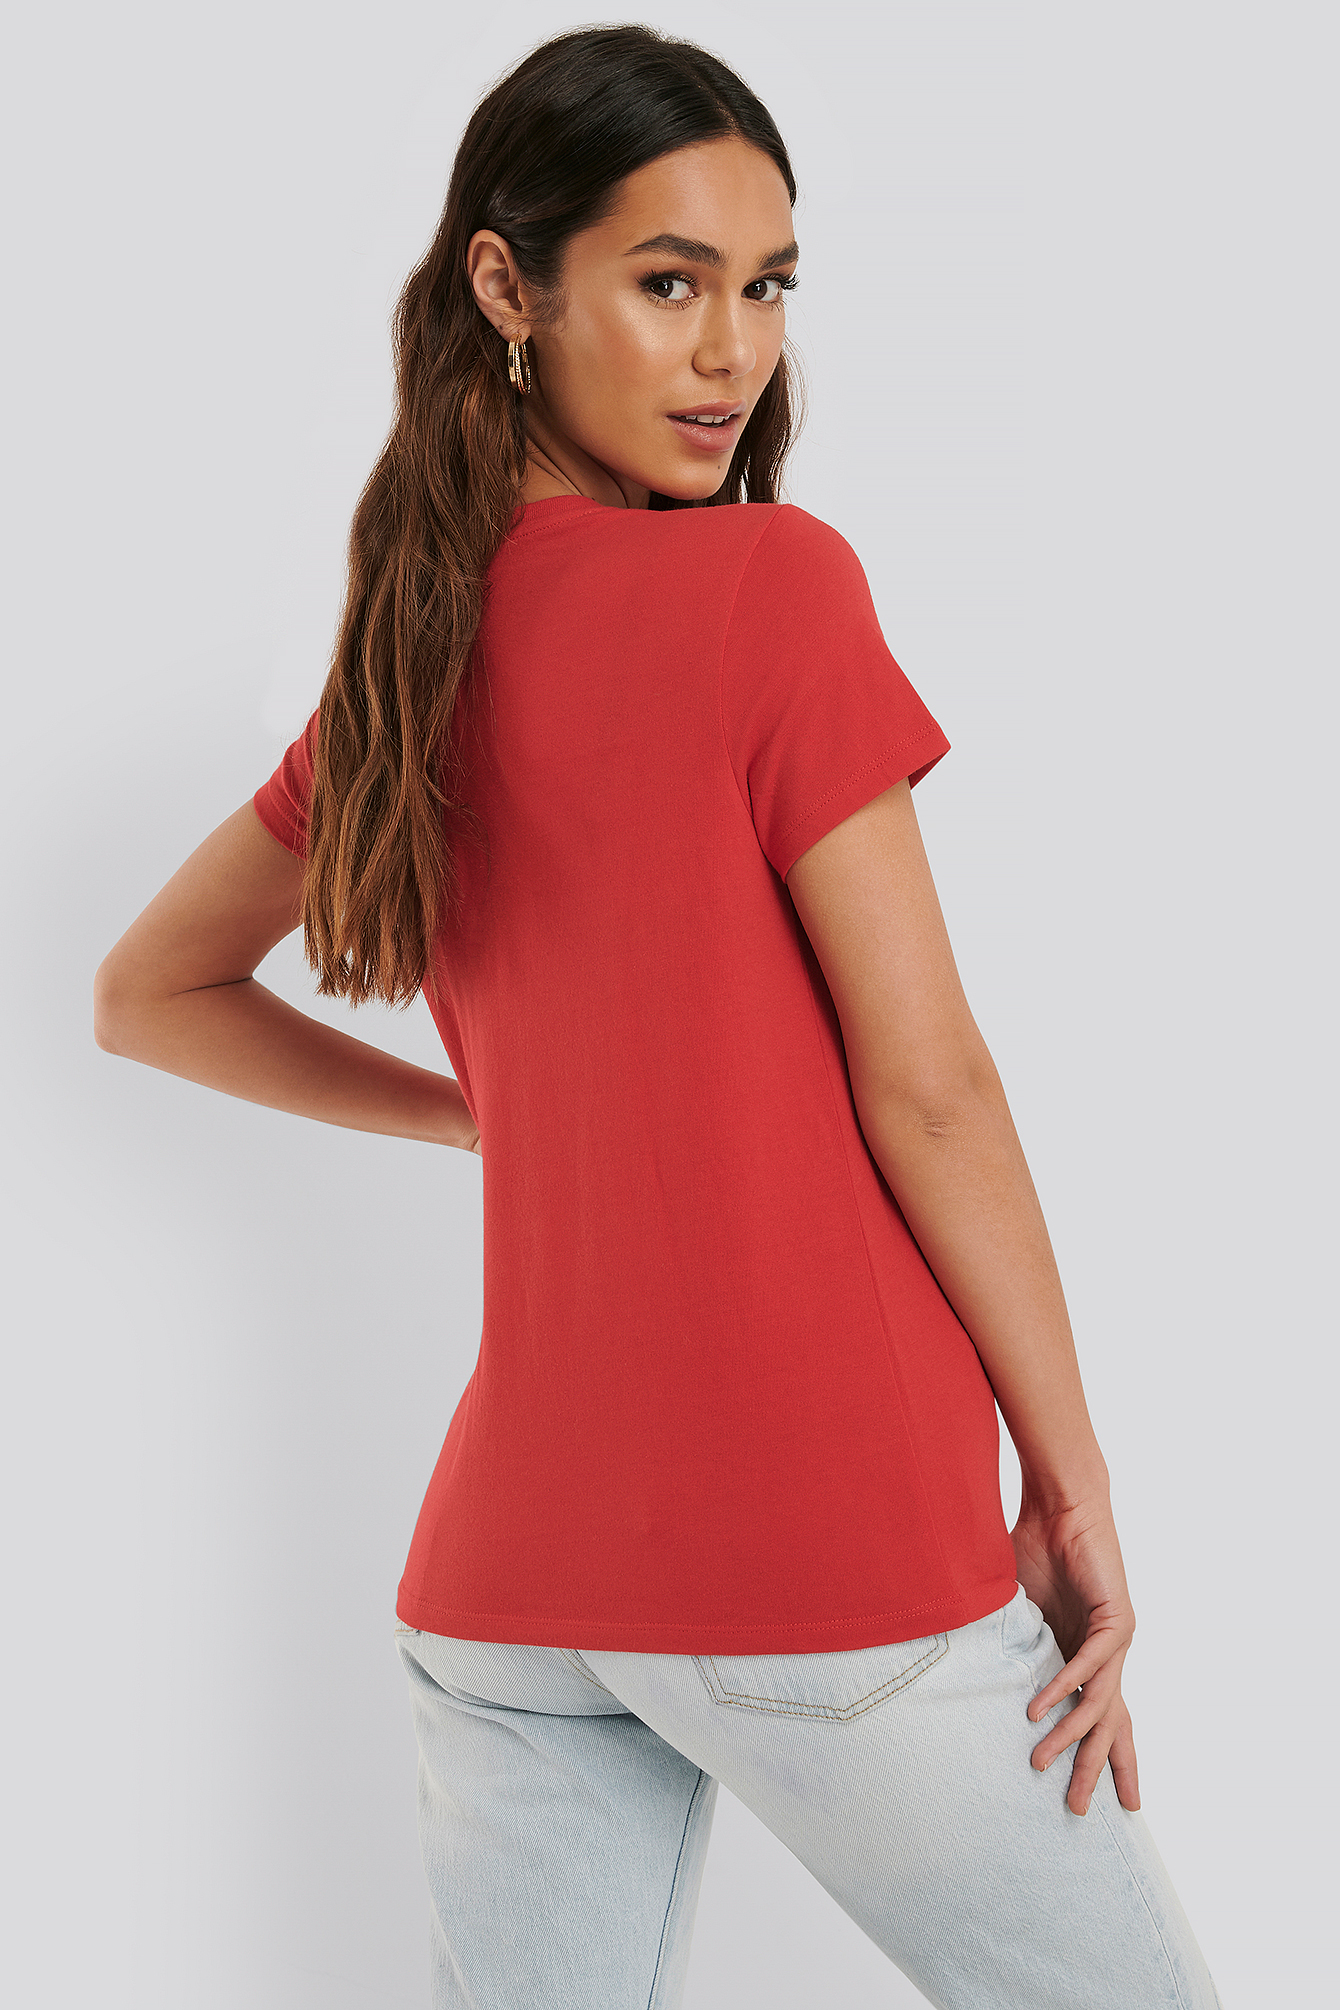 Outline Brilliant Red The Perfect Tee